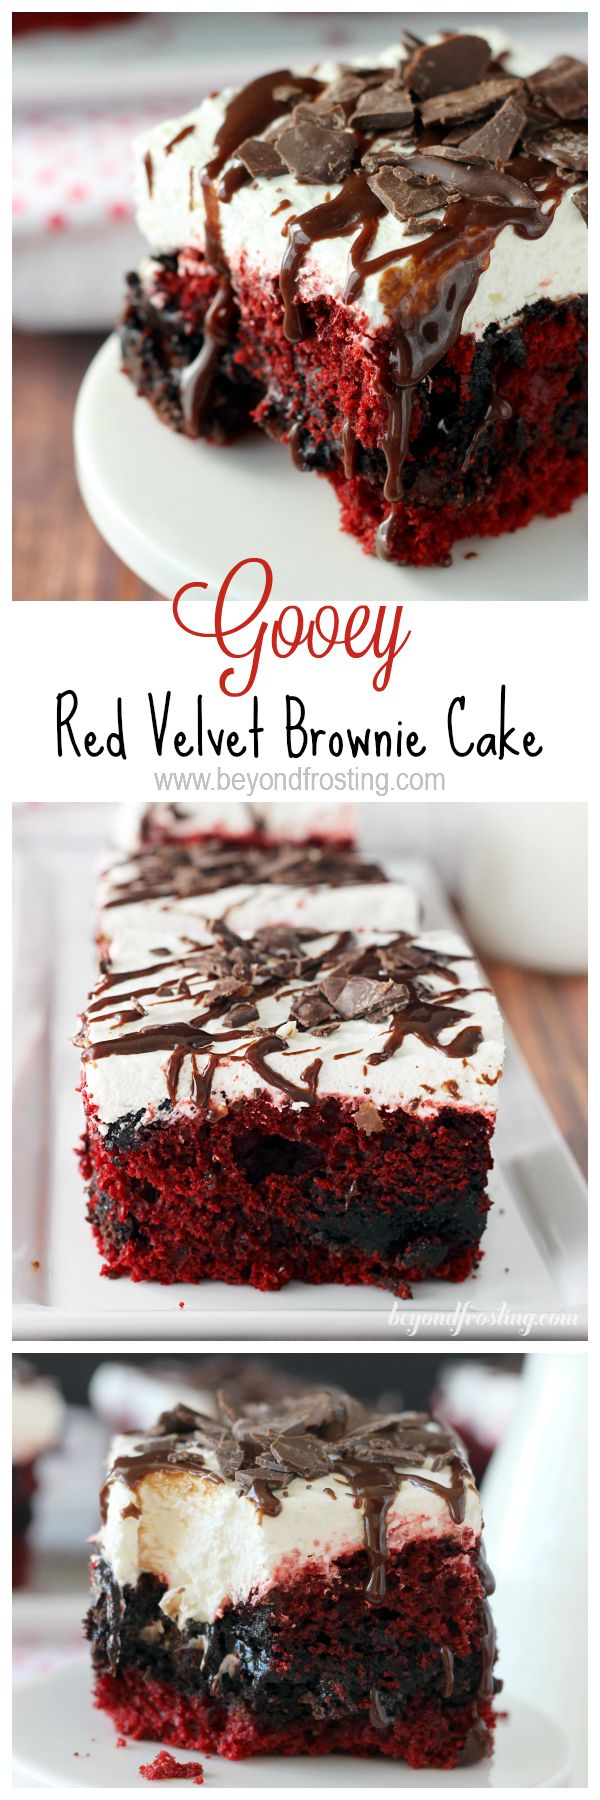 """This Gooey Red Velvet Brownie Cake is seriously moutherwating. It's a classic red velvet cake mixed with a brownie. It's topped with a white chocolate cream cheese frosting. This is the best red velvet poke cake you've ever seen"